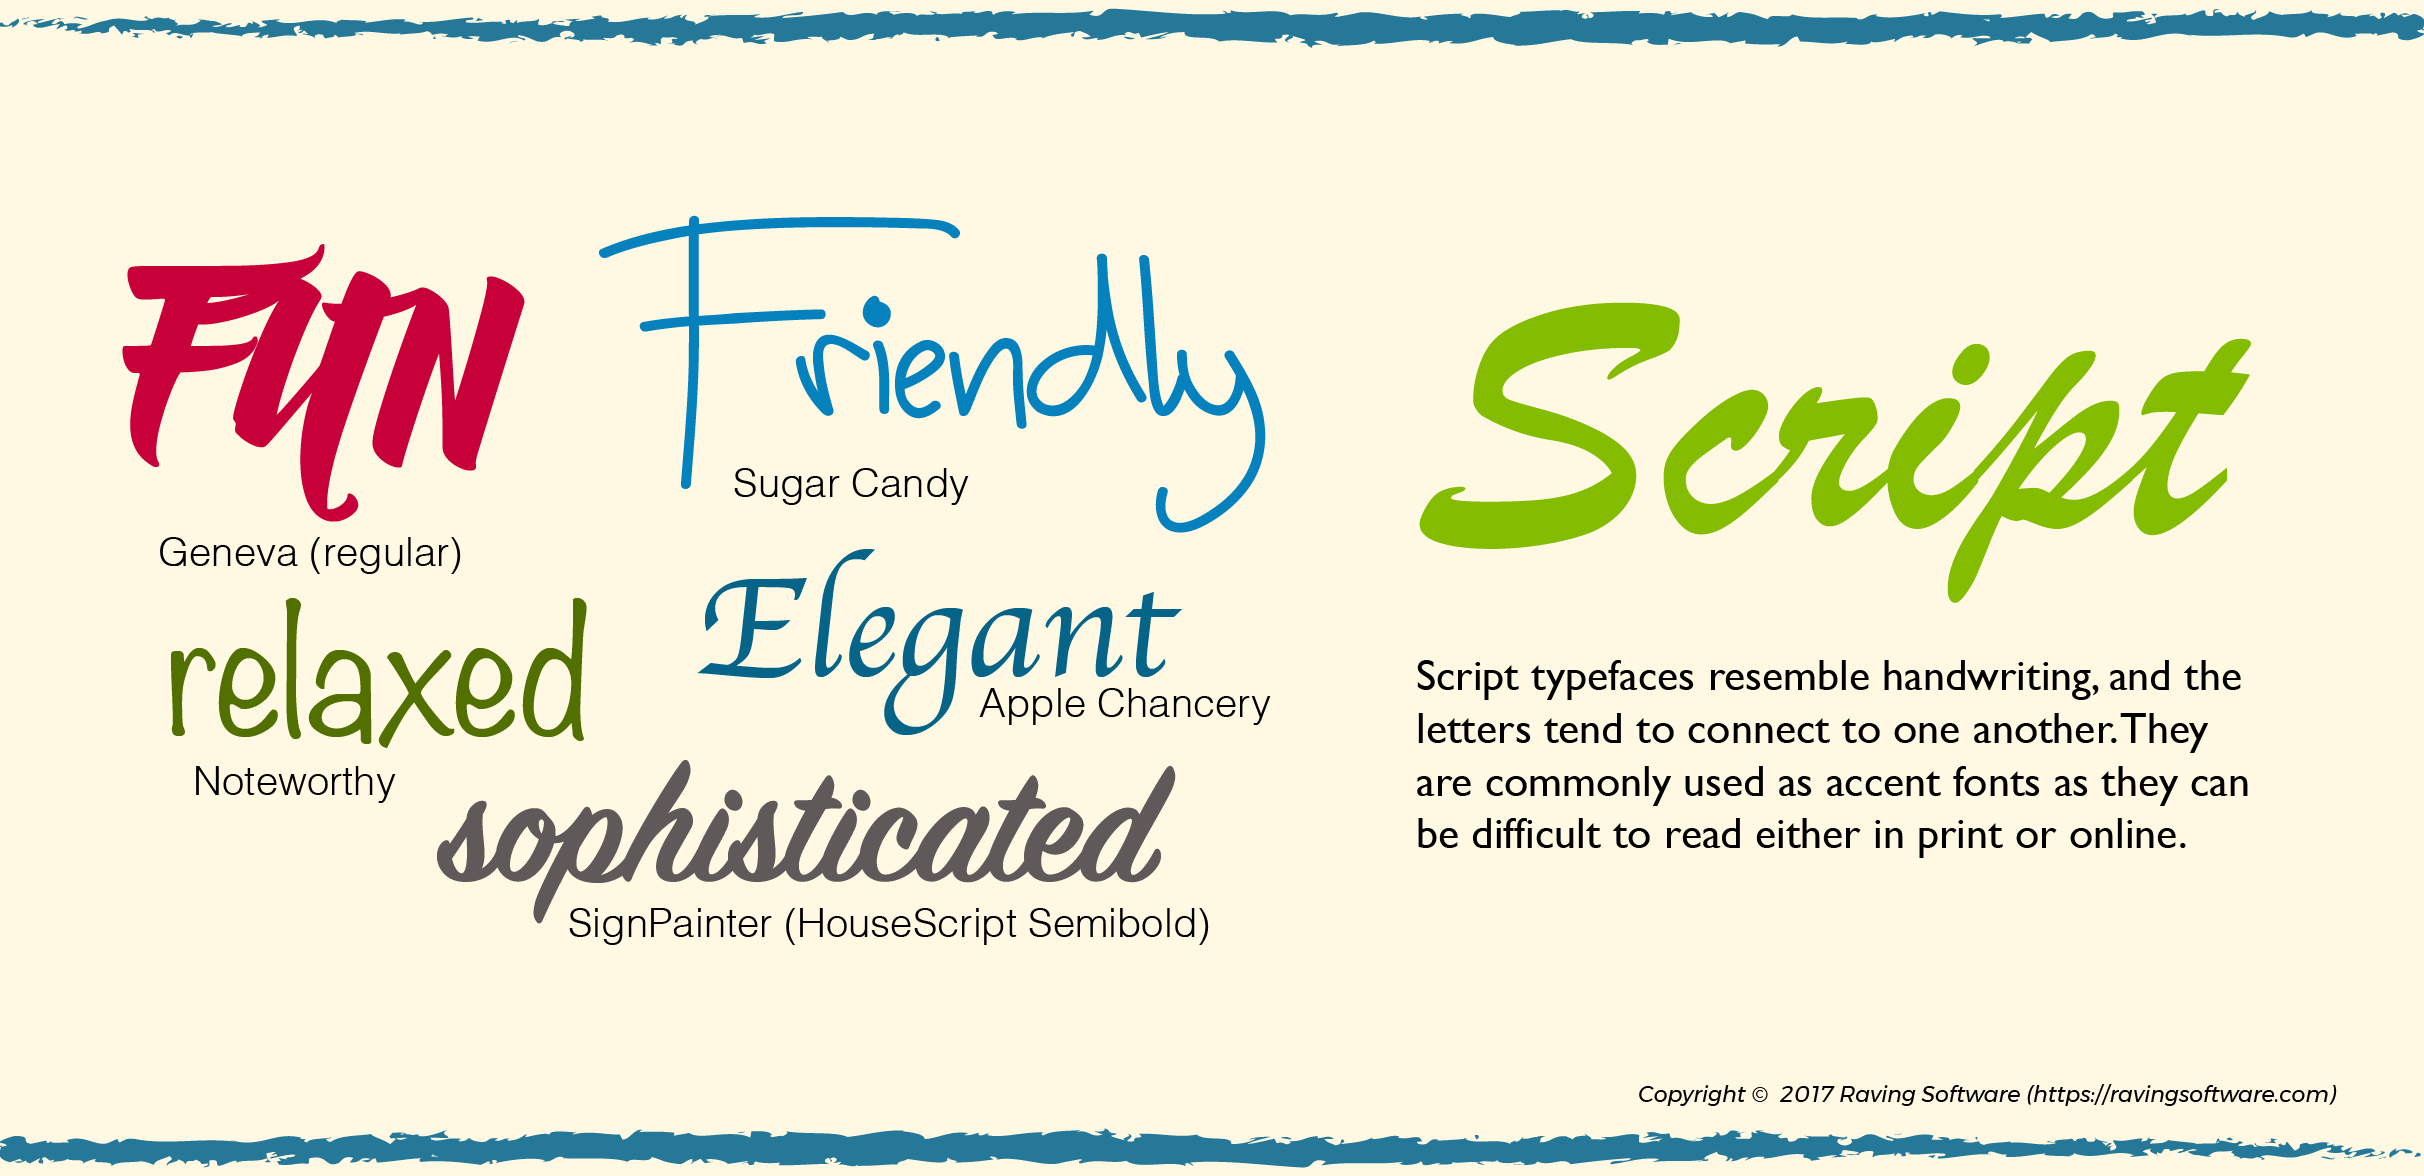 Examples of script typefaces and connotations